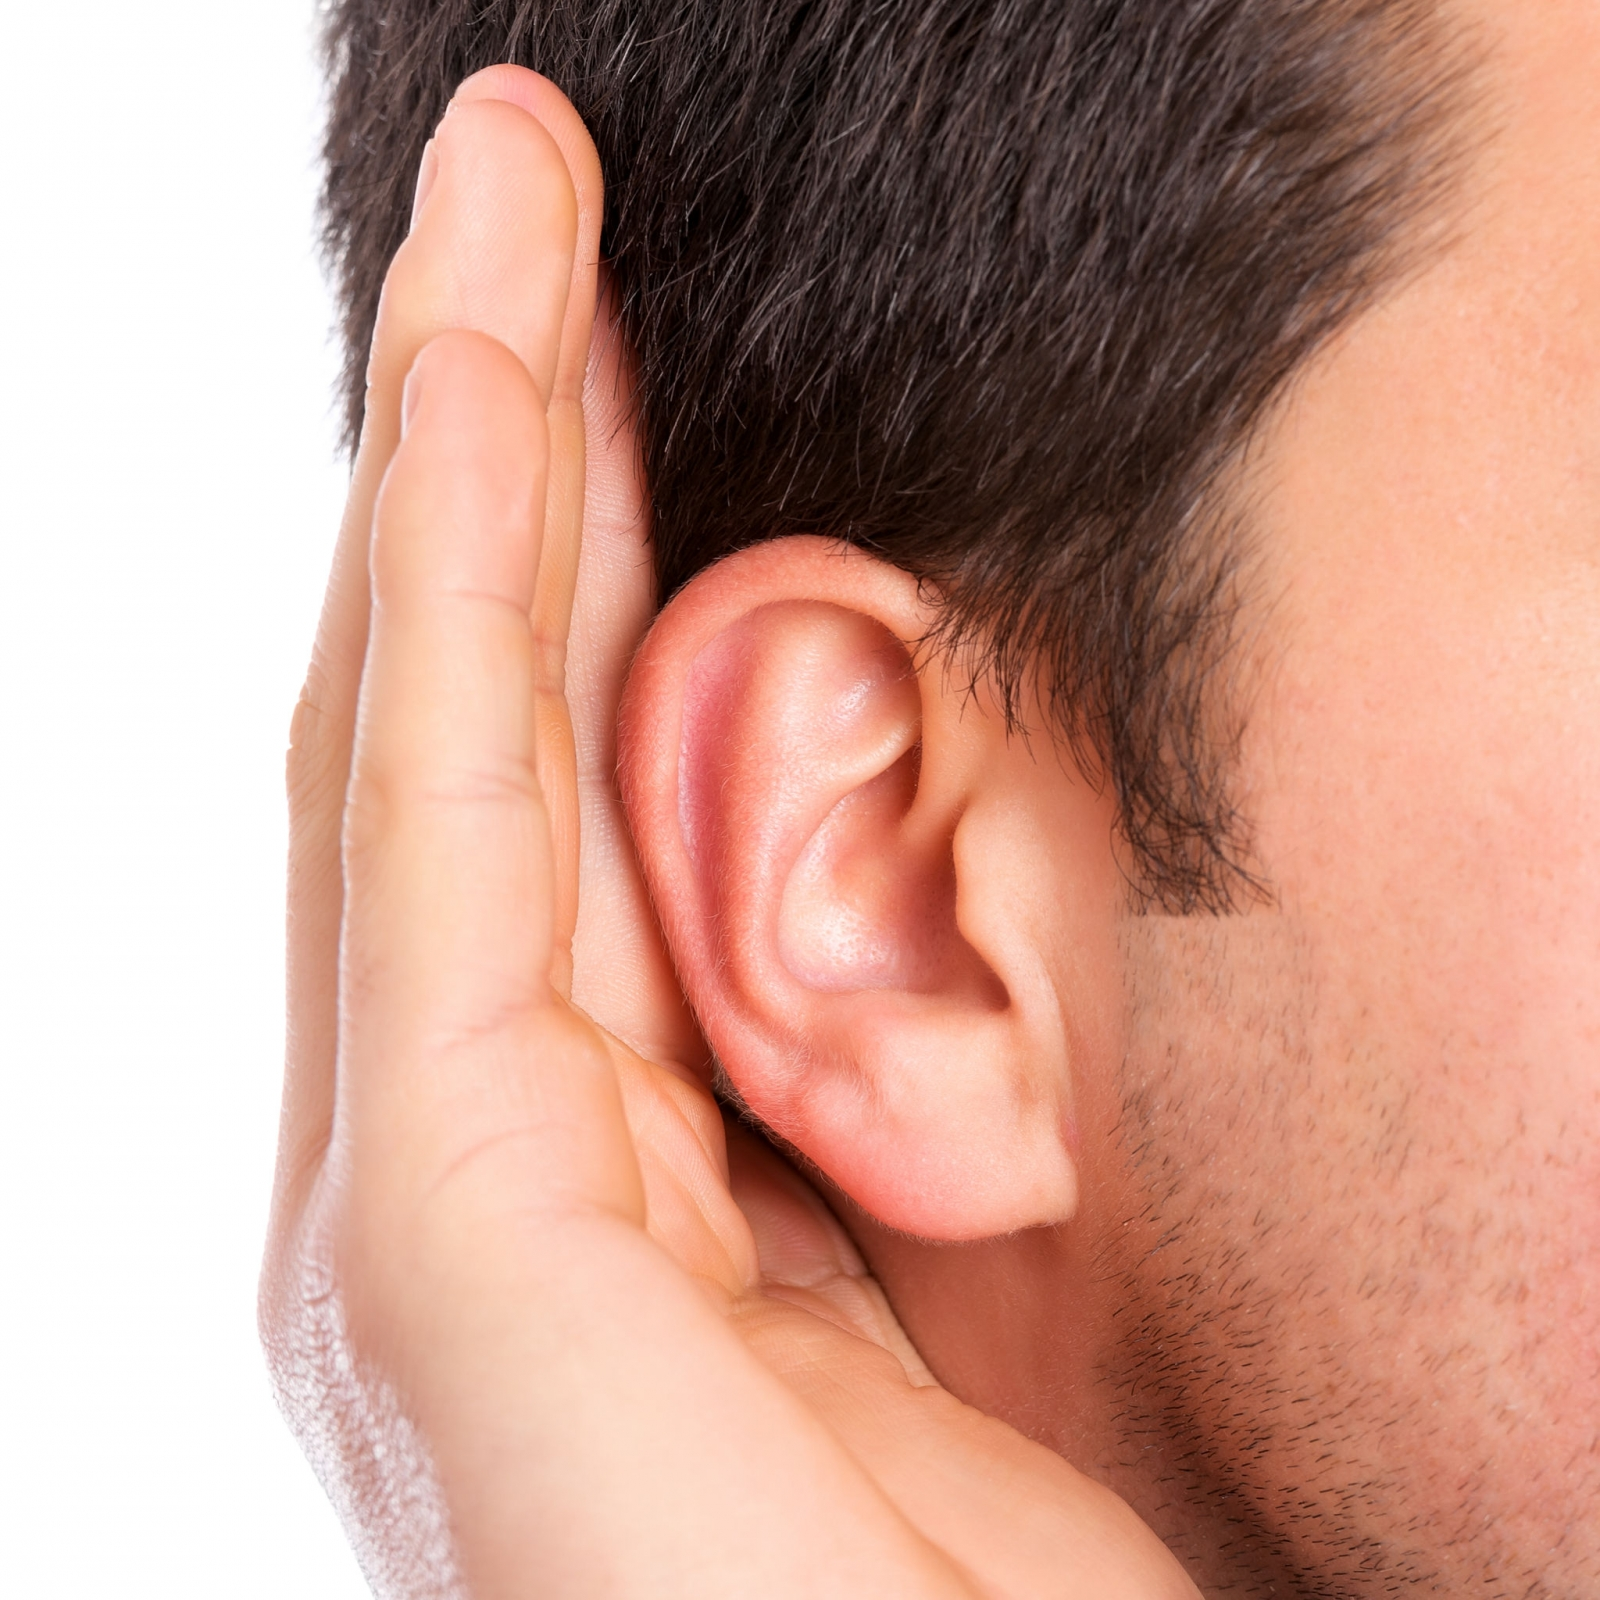 The history of hearing aid design